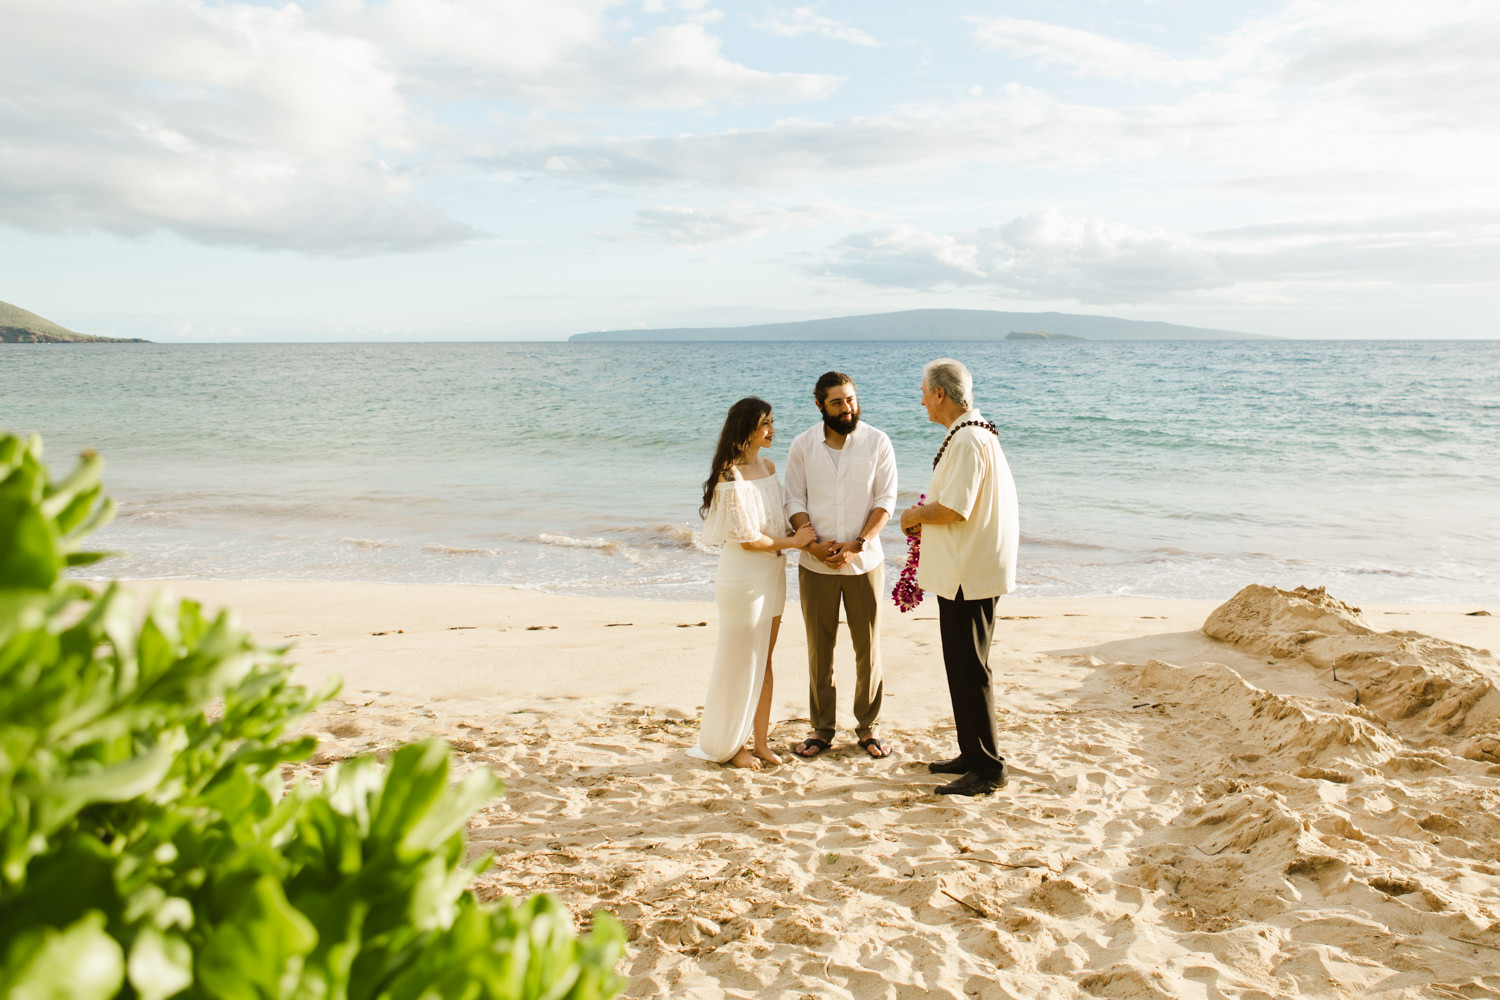 wedding_maui_wailea_elopement-1-1.jpg